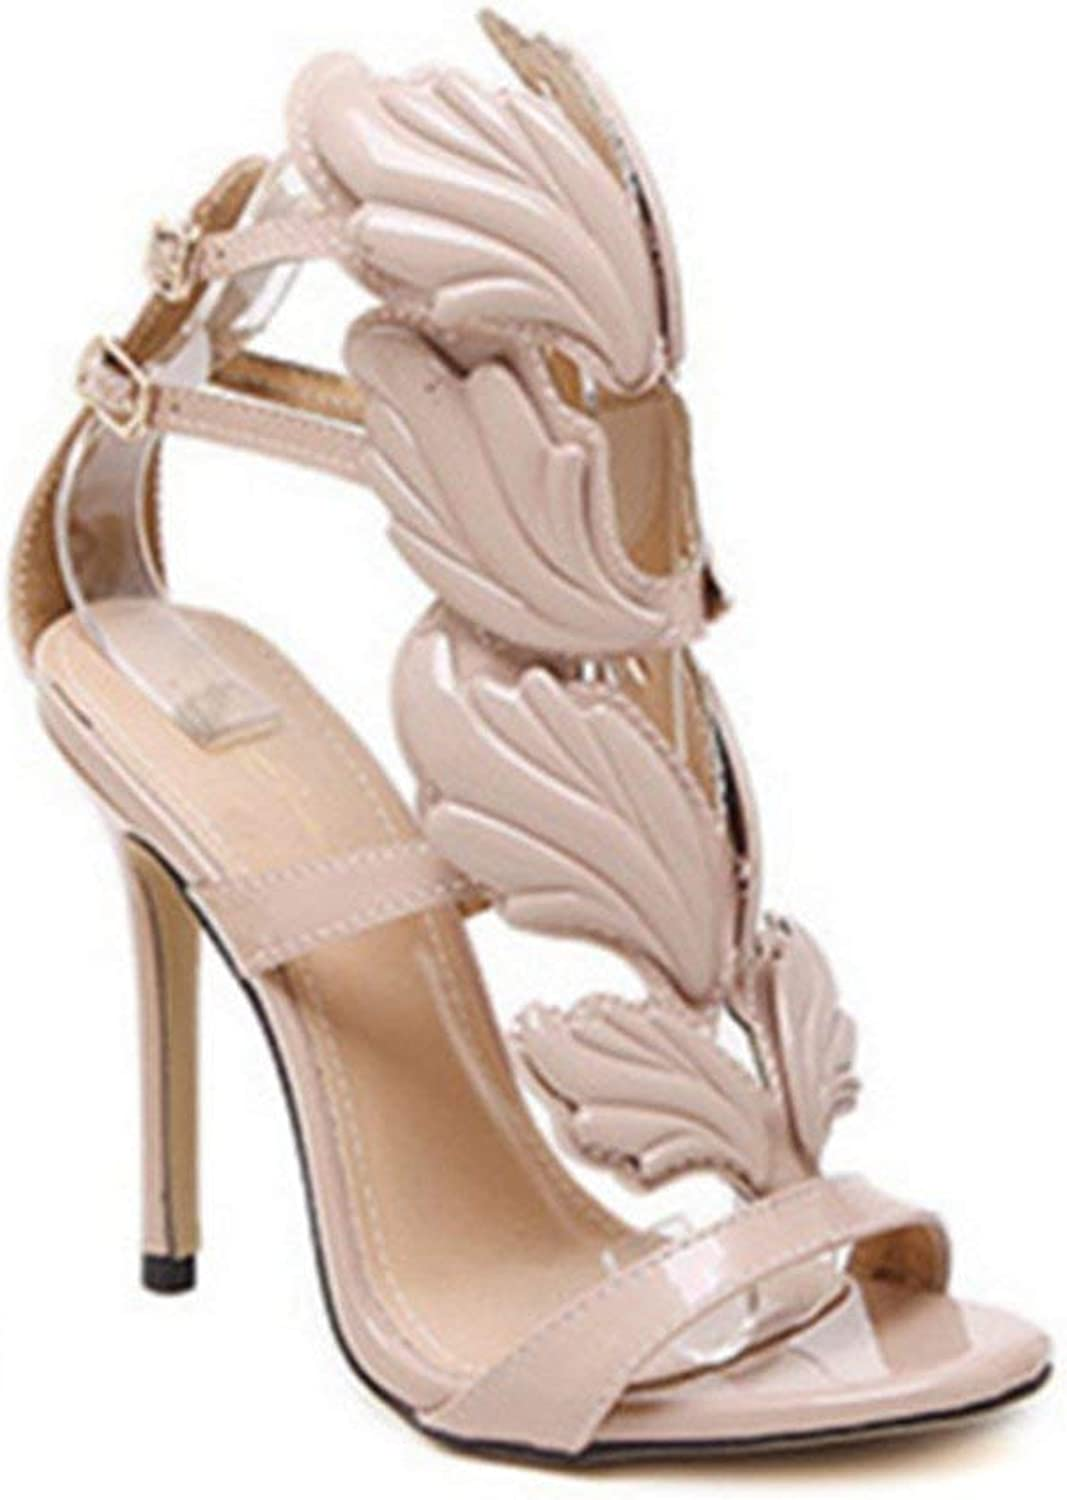 Elsa Wilcox Women Ankle Strap Buckle Sandals Peep Open Toe Platform Anti-Slip Dress Party Pump Stiletto High Heel